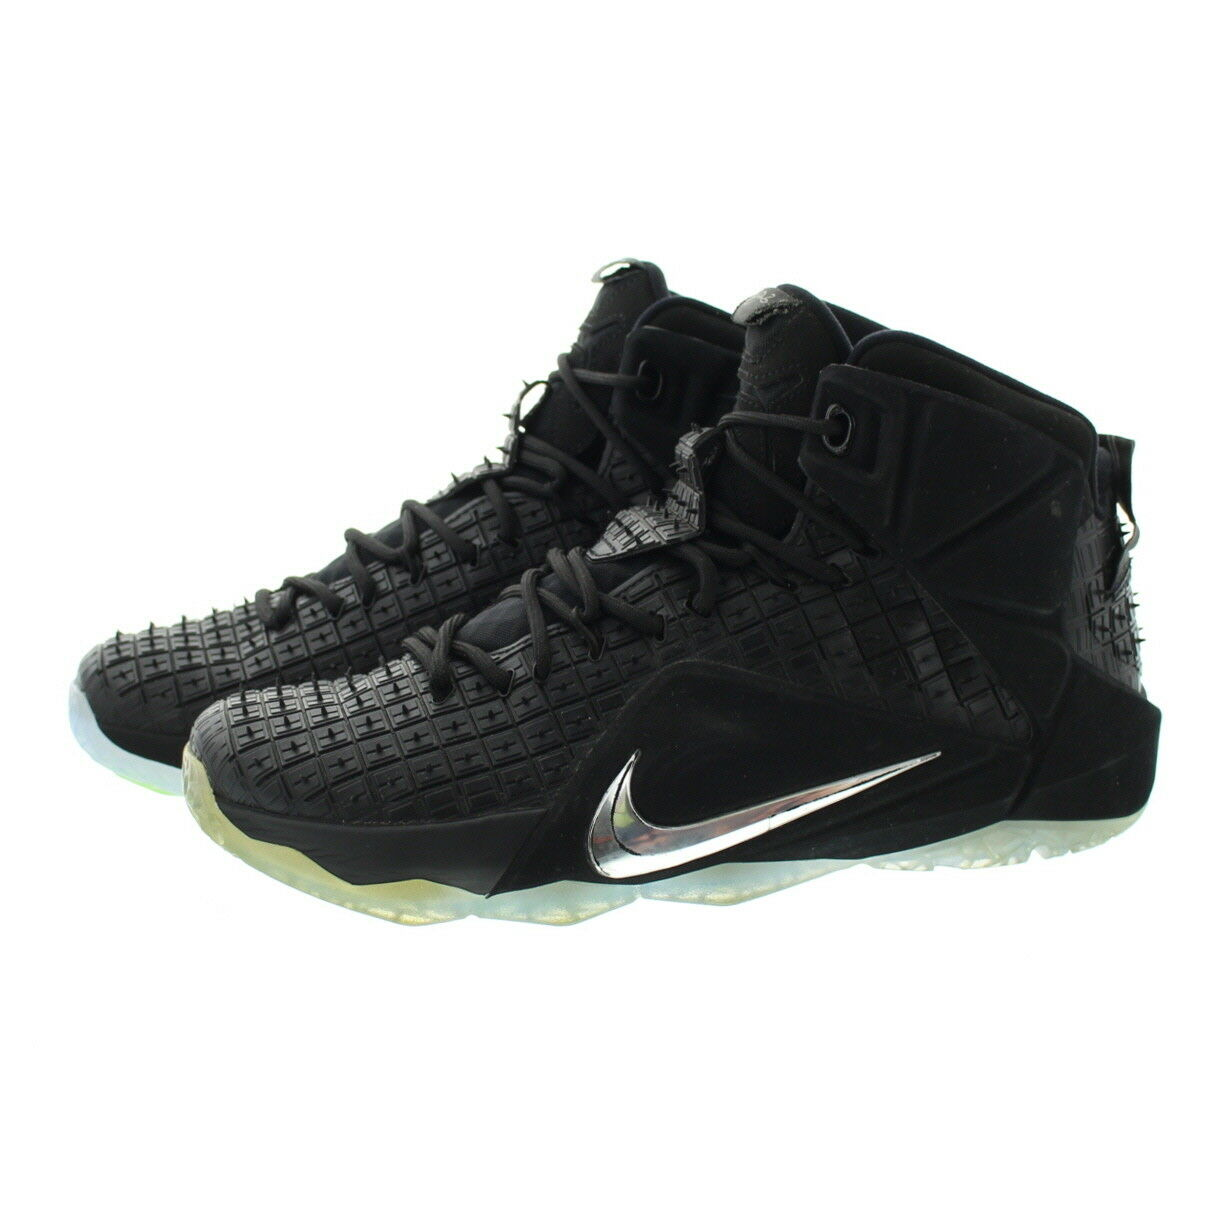 big sale 3ee8f 4cd3f ... best nike 744286 001 rubber mens lebron 12 ext rubber 744286 001 city  qs basketball shoes